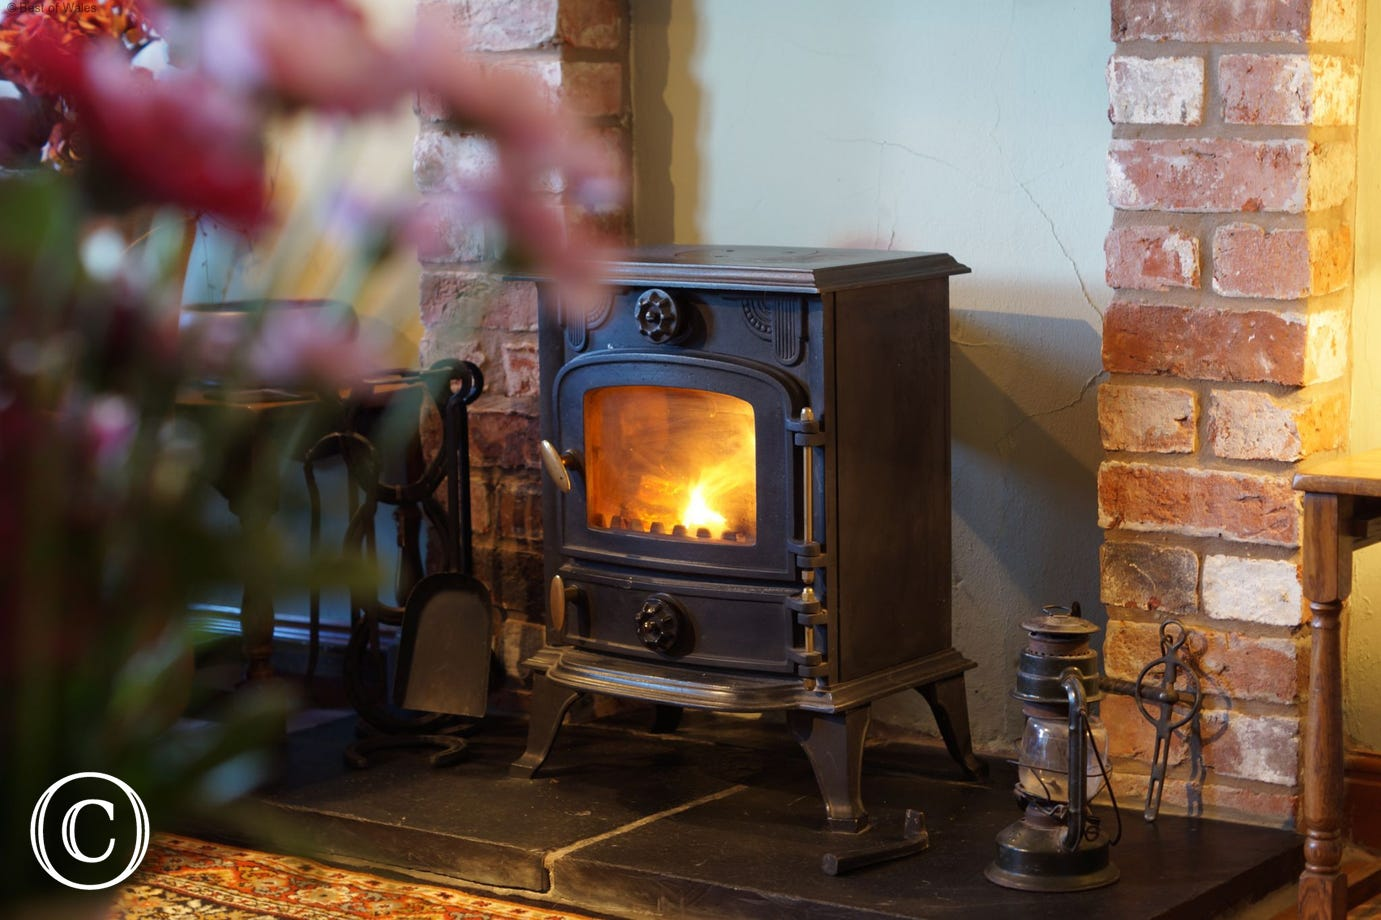 Enjoy a cosy night in in front of the fire with a good film (logs provided)